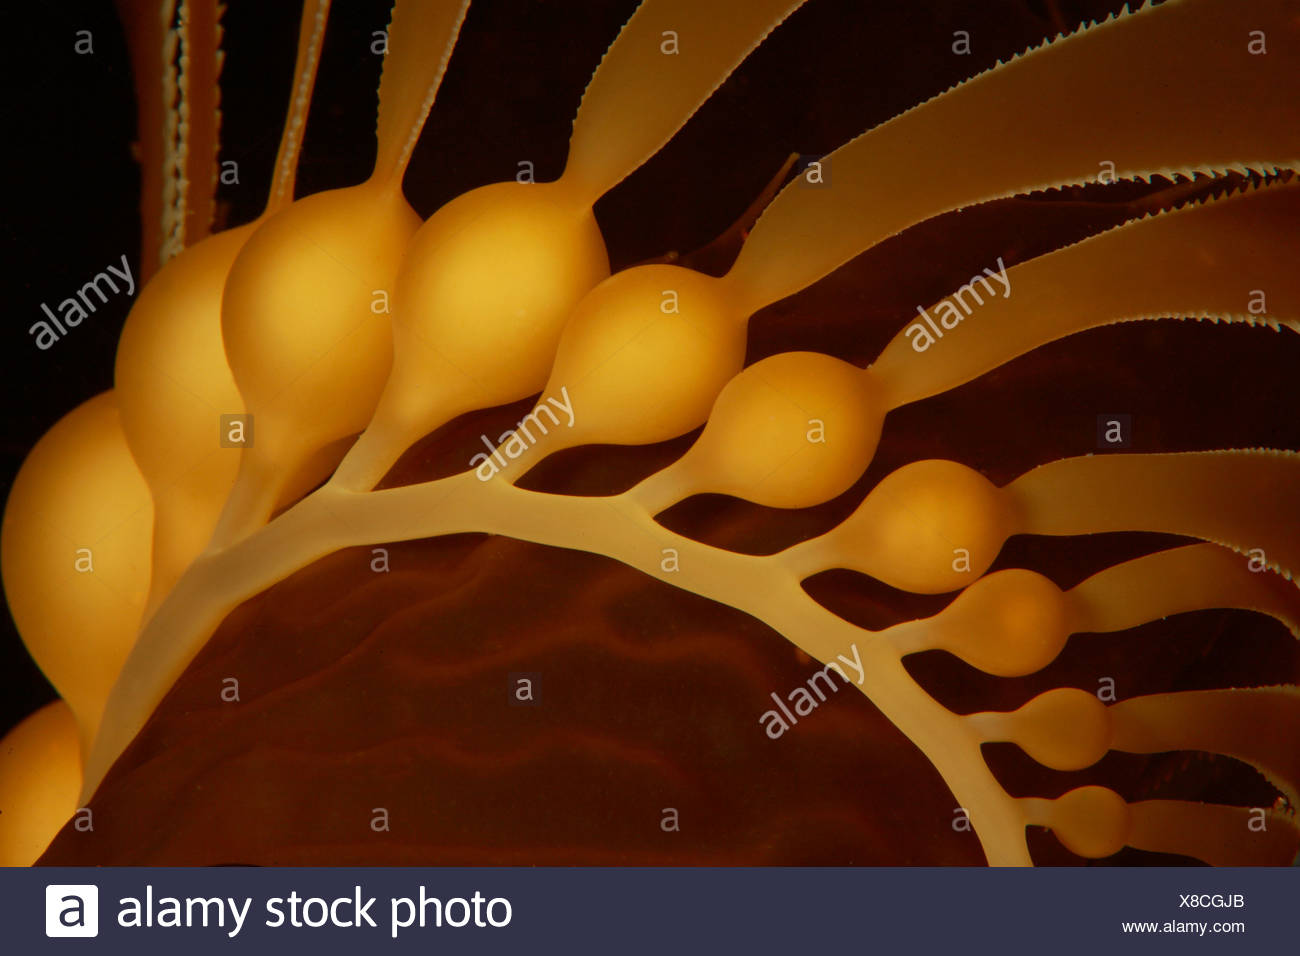 Giant Kelp Detail of Bubbles Macrocystis pyrifera Santa Catalina Island Channel Islands Pacific California USA - Stock Image